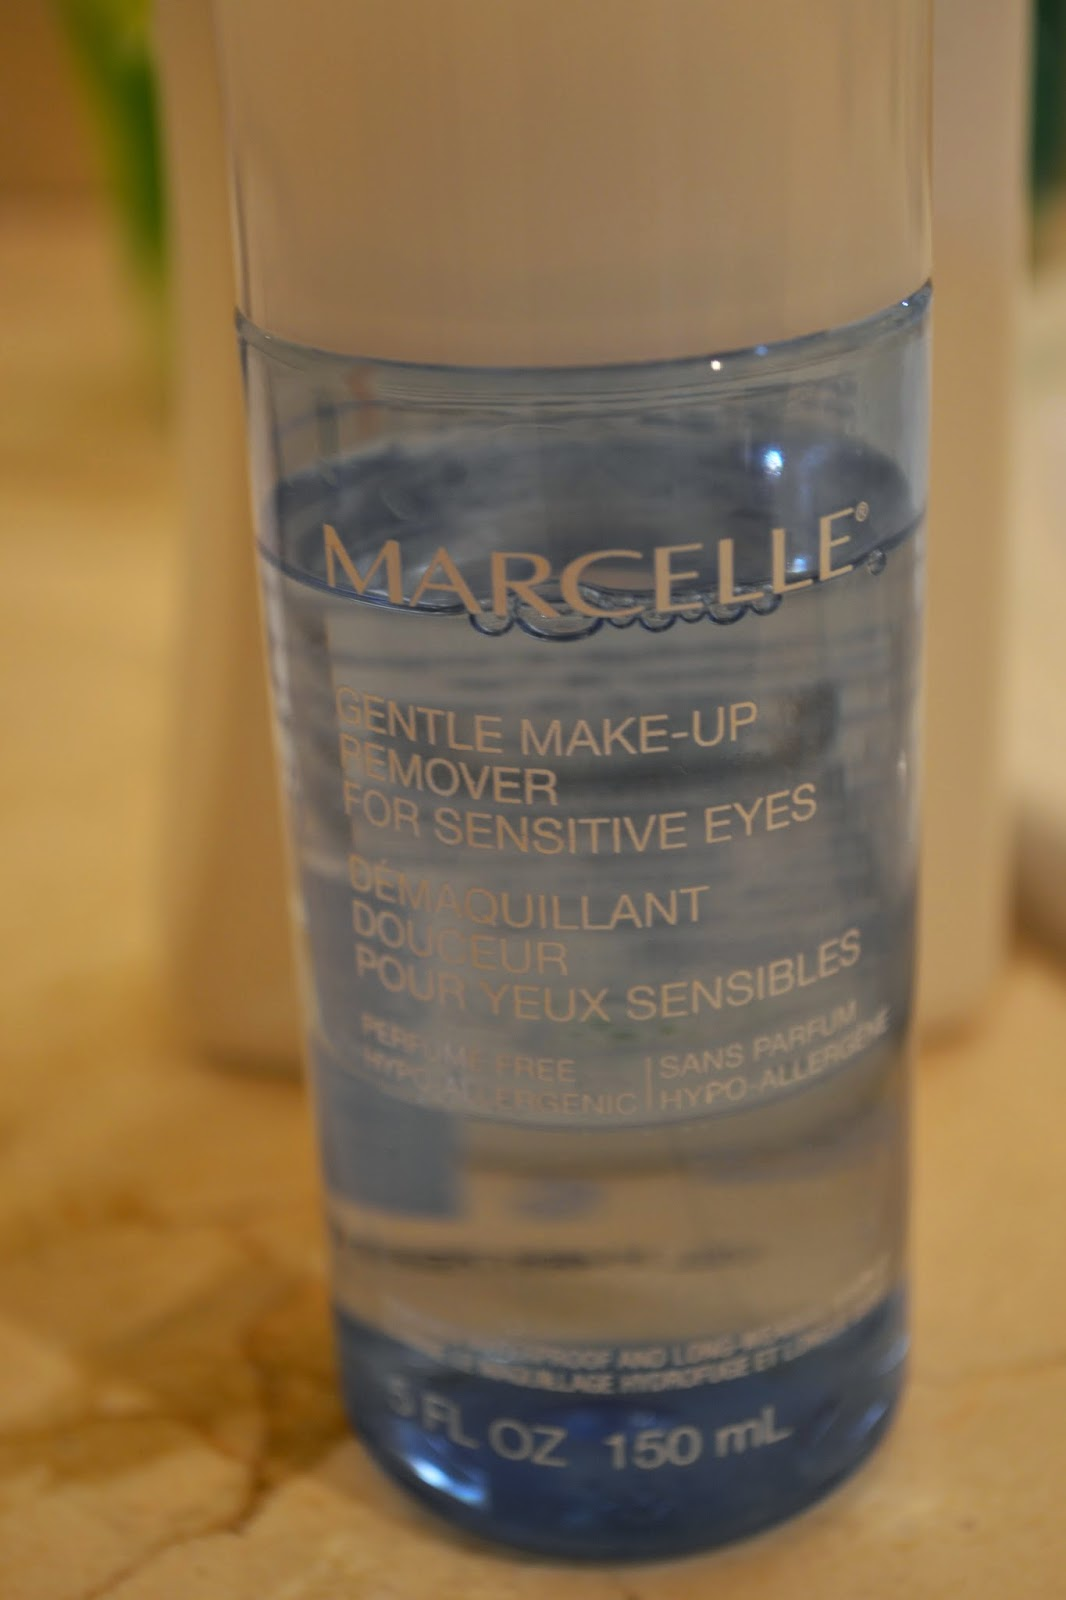 Marelle Gentle Makeup Remover for Sensitive Eyes